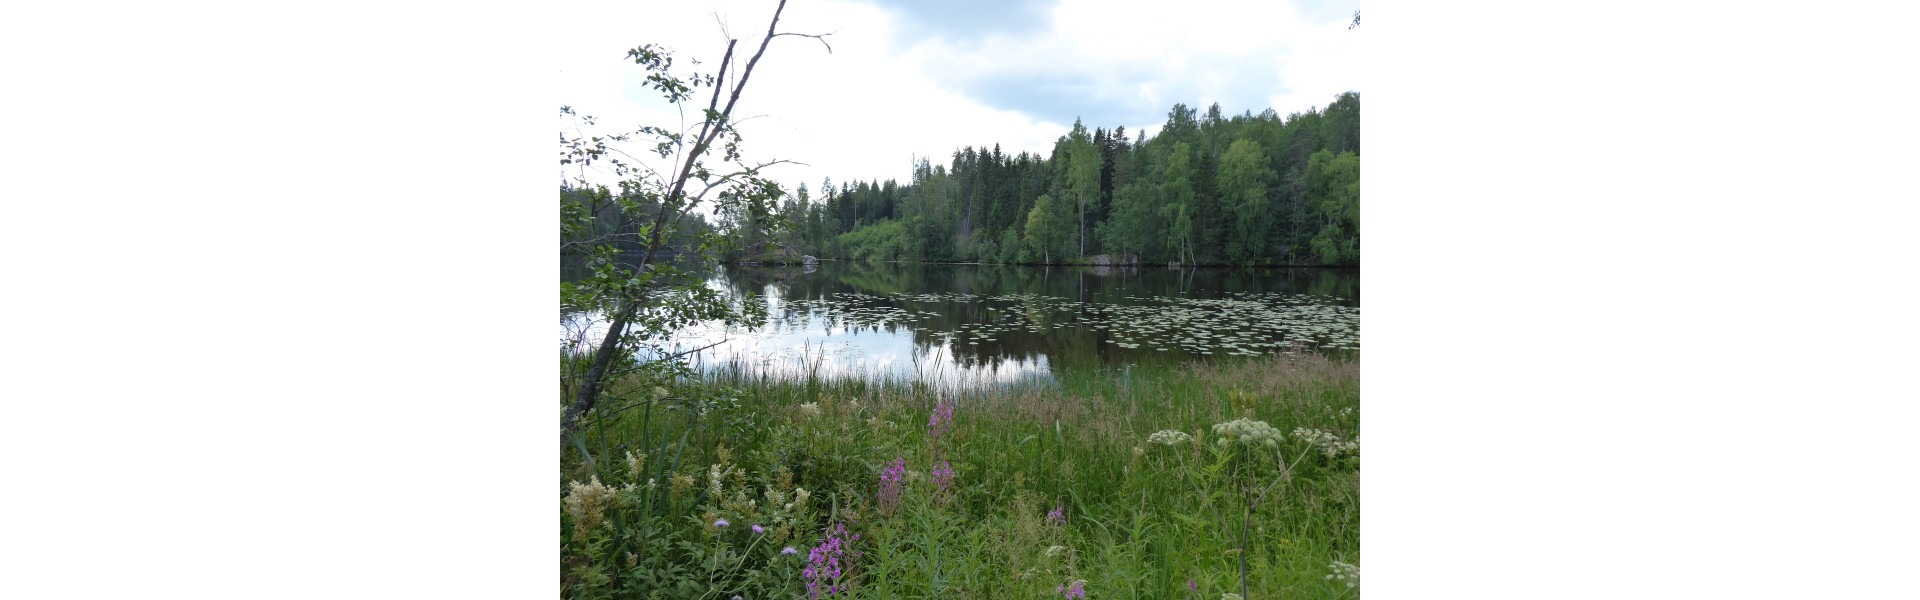 Hiking along Hiitolanjoki River